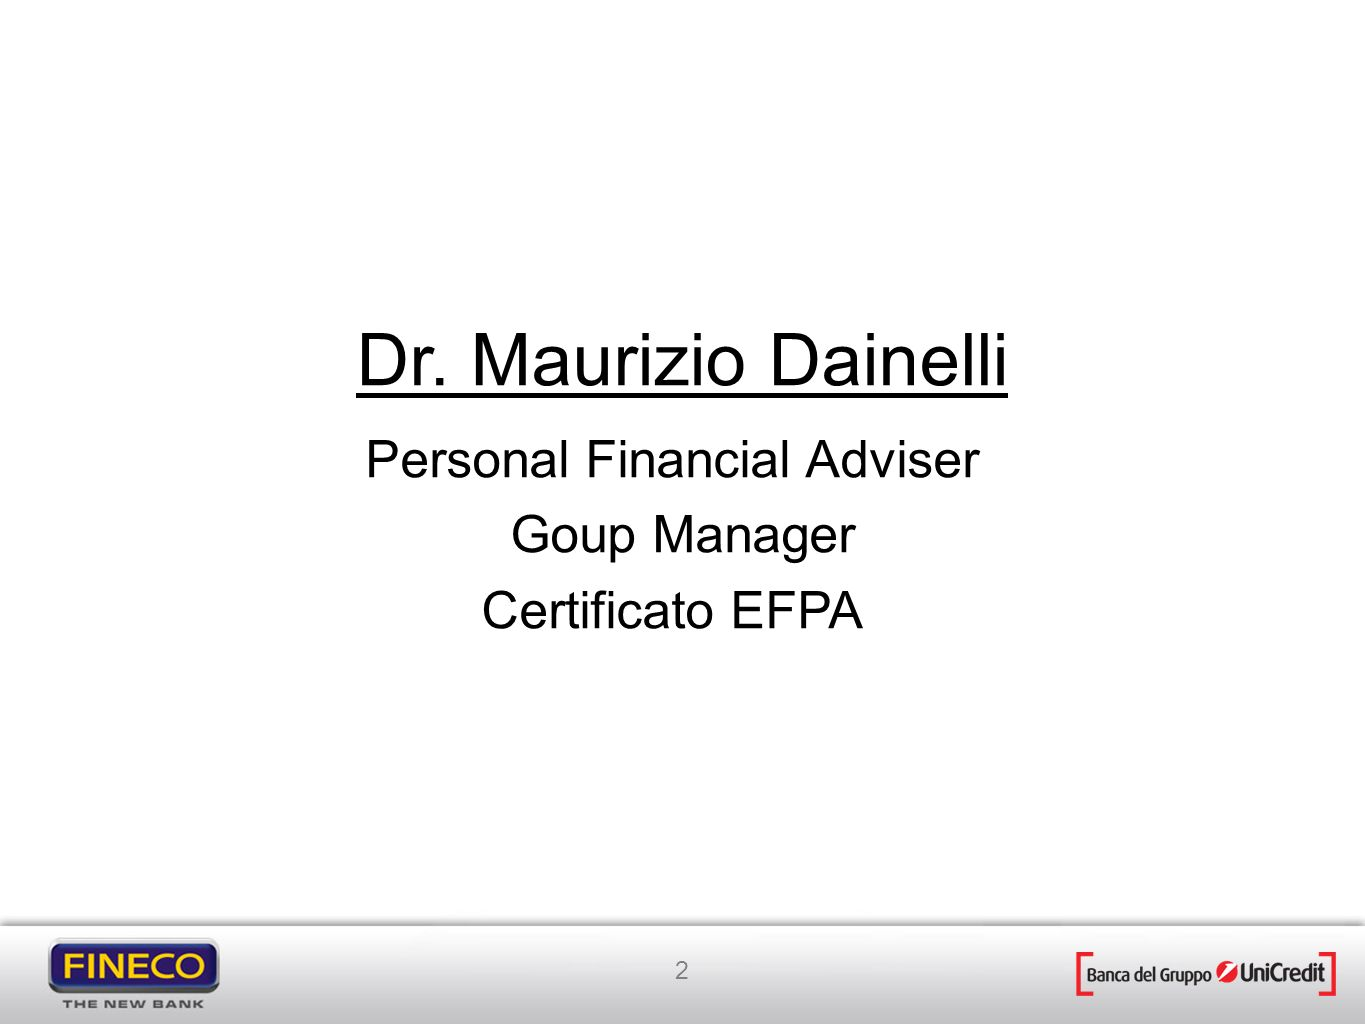 Dr. Maurizio Dainelli Personal Financial Adviser Goup Manager